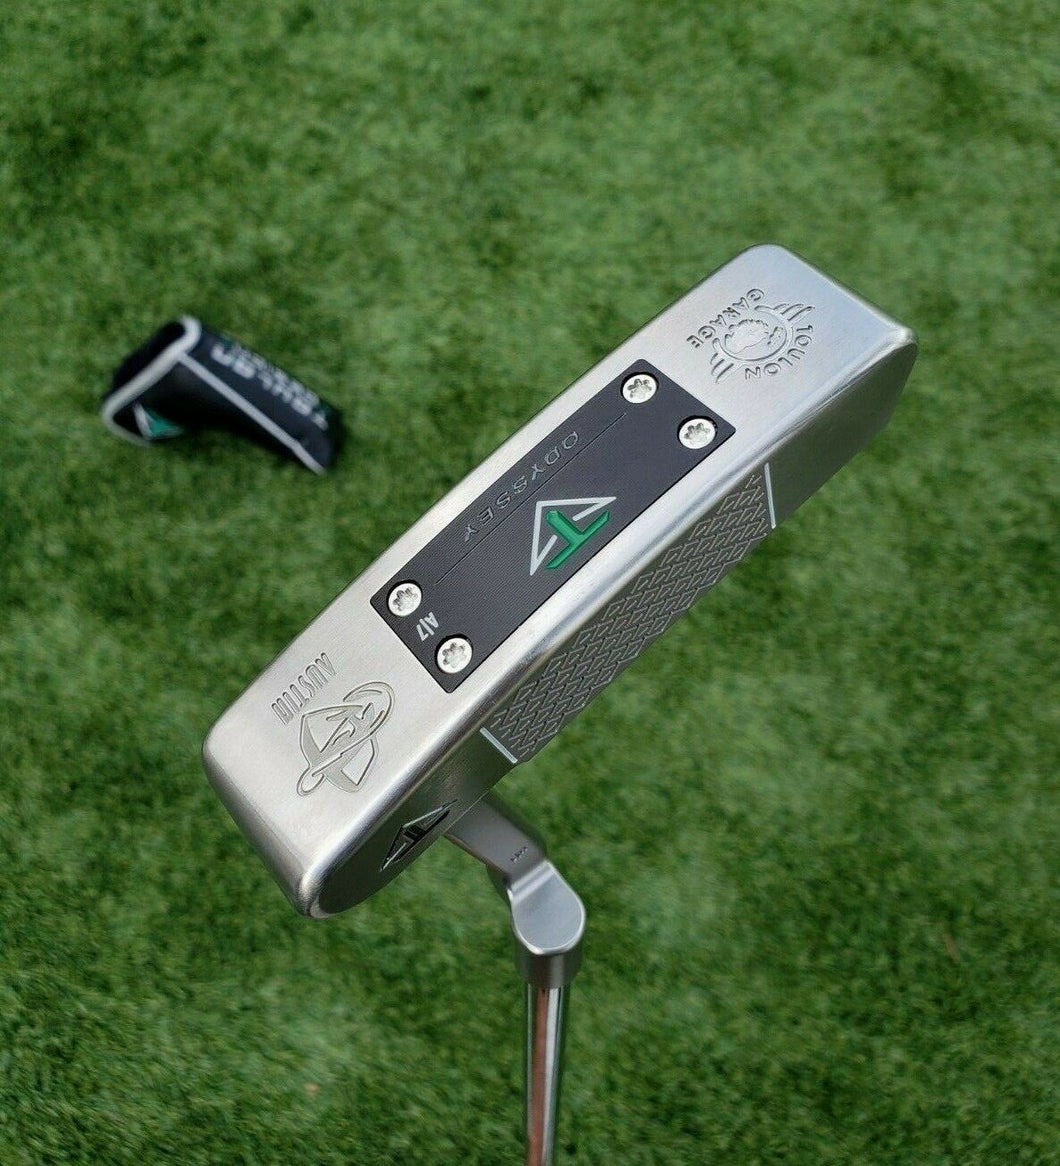 Toulon Odyssey Austin Garage Putter, A/7 weights 35